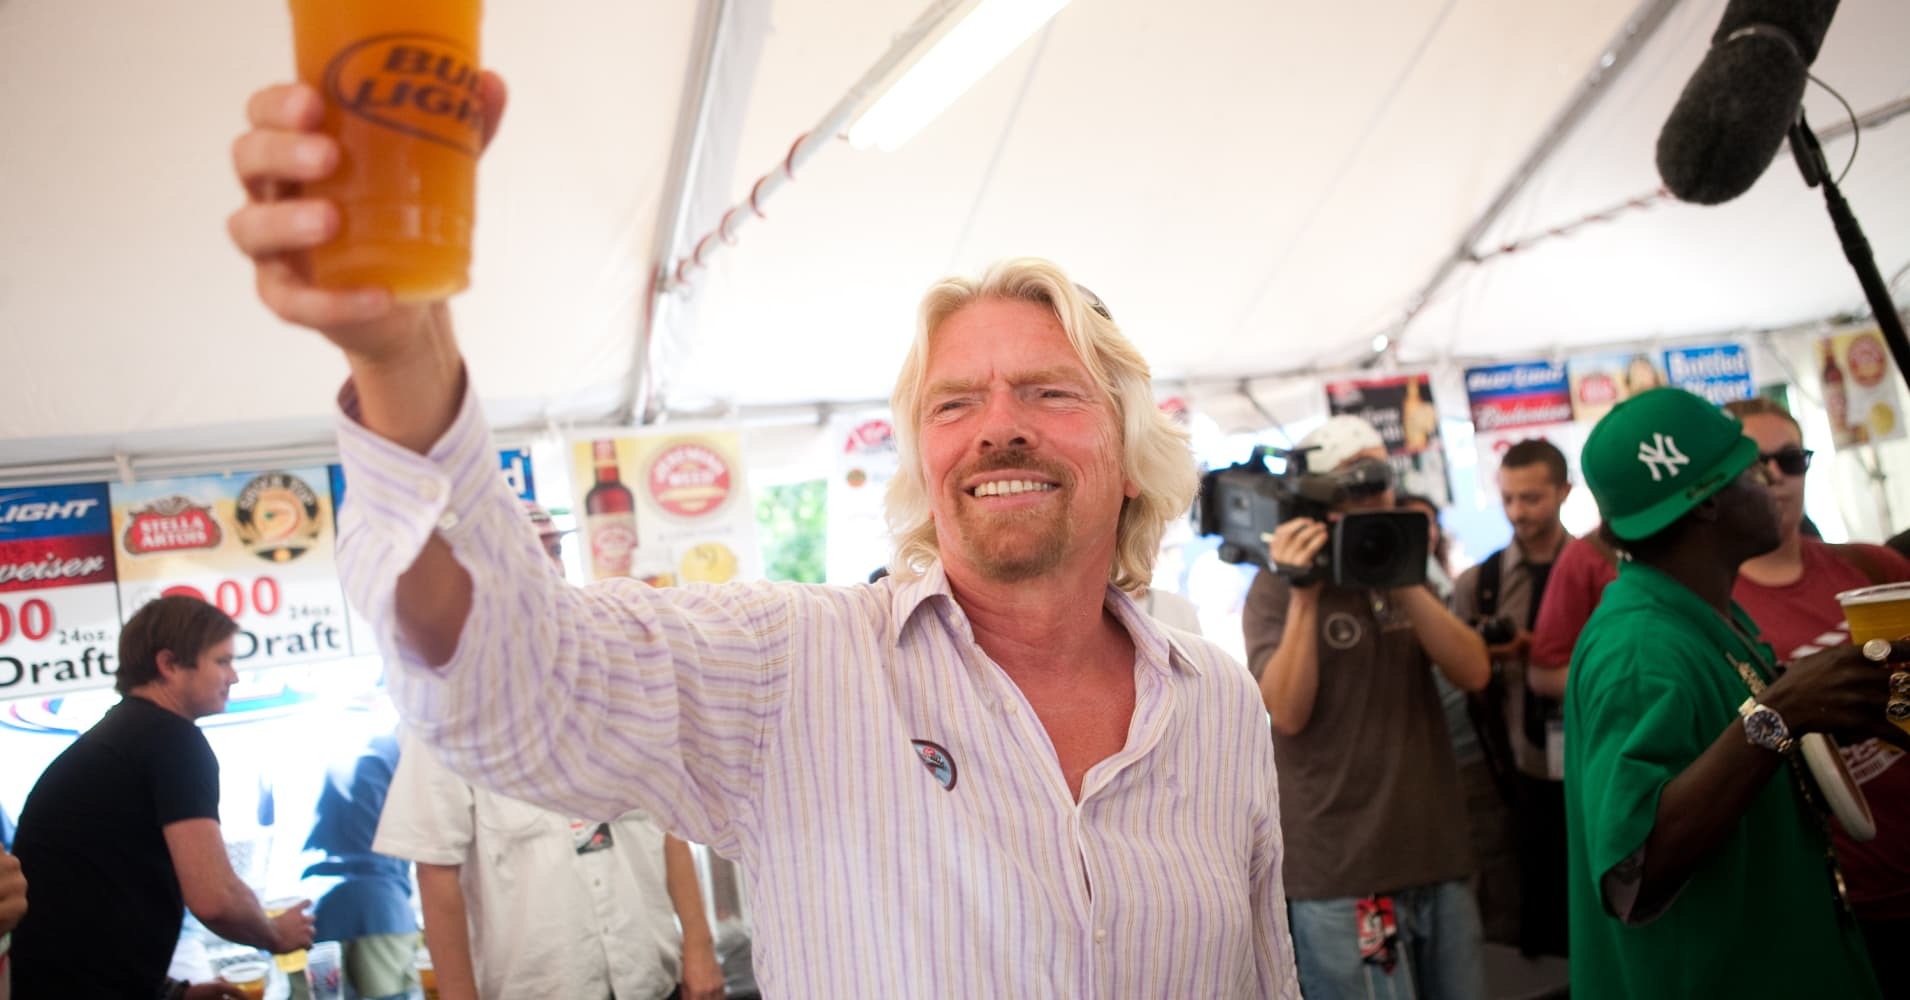 Sir Richard Branson serves beer at the Virgin Mobile FreeFest in 2009.